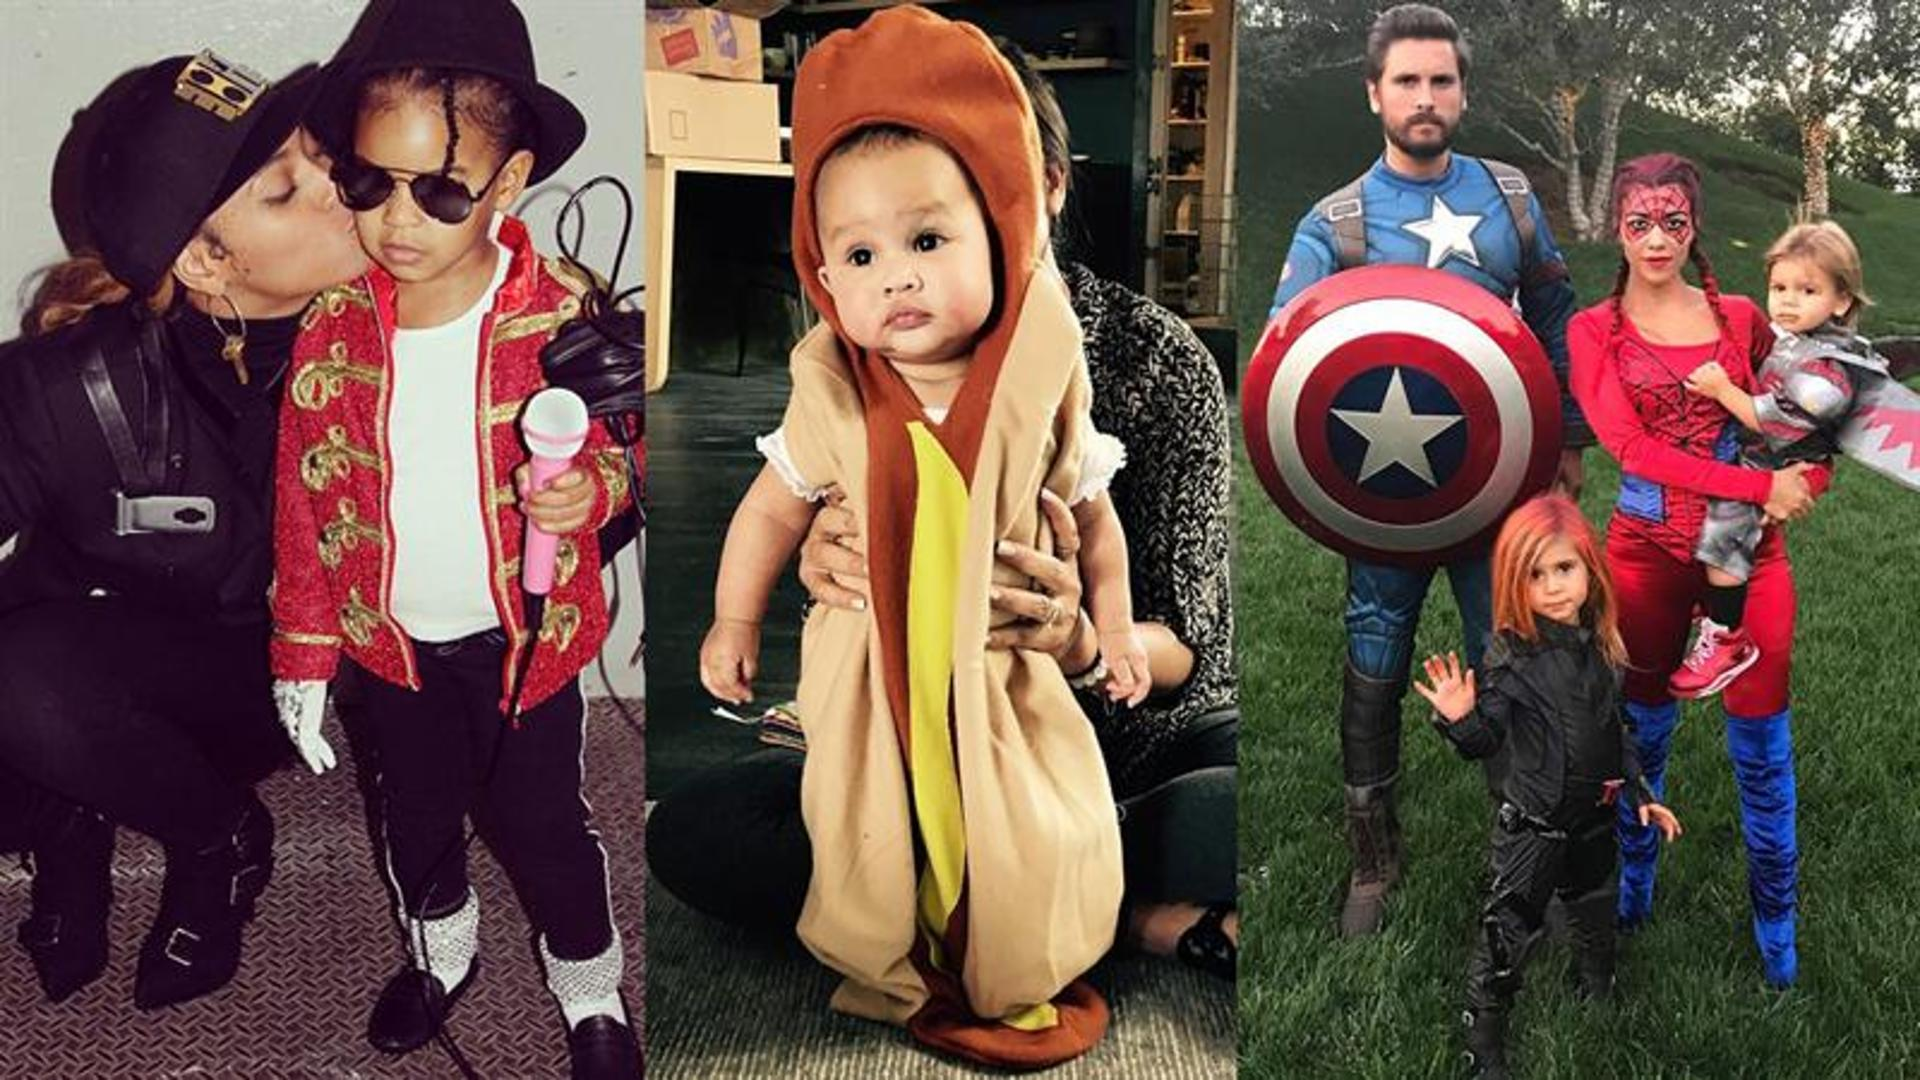 Best celebrity kids and family Halloween costumes: Beyoncé, Chrissy Teigen, Neil Patrick Harris and more